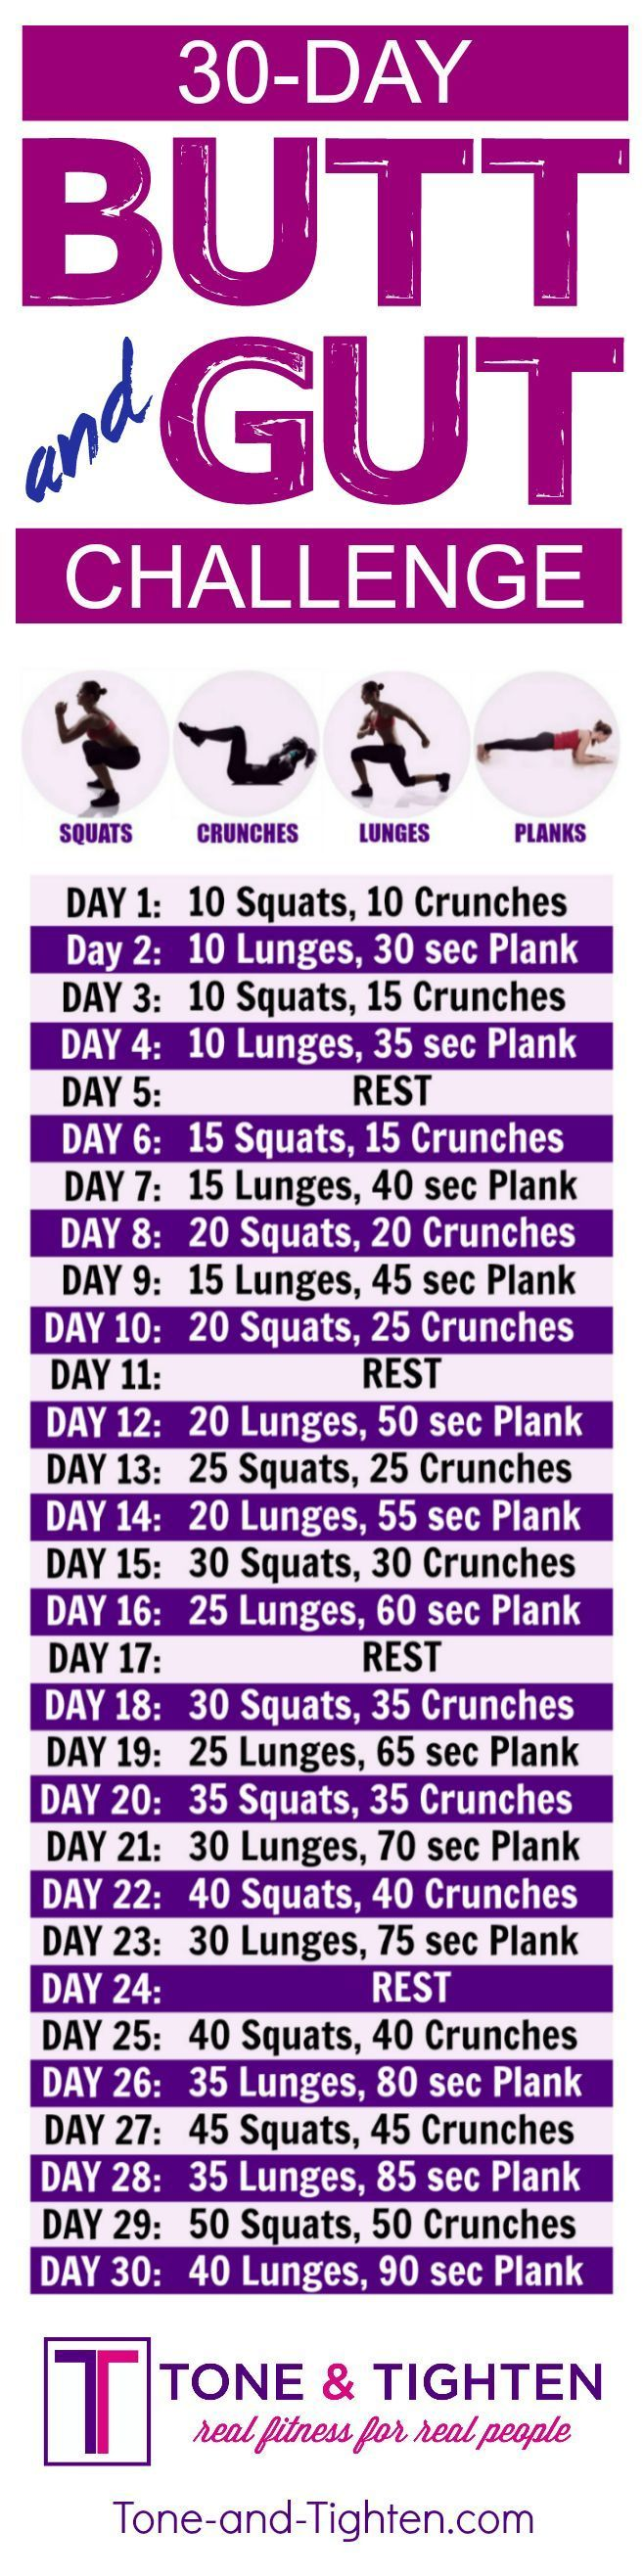 30 Day Workout Plan For Your Butt And Abs - https://www.10waystogetridof.com/30-day-workout-plan-for-your-butt-and-abs/